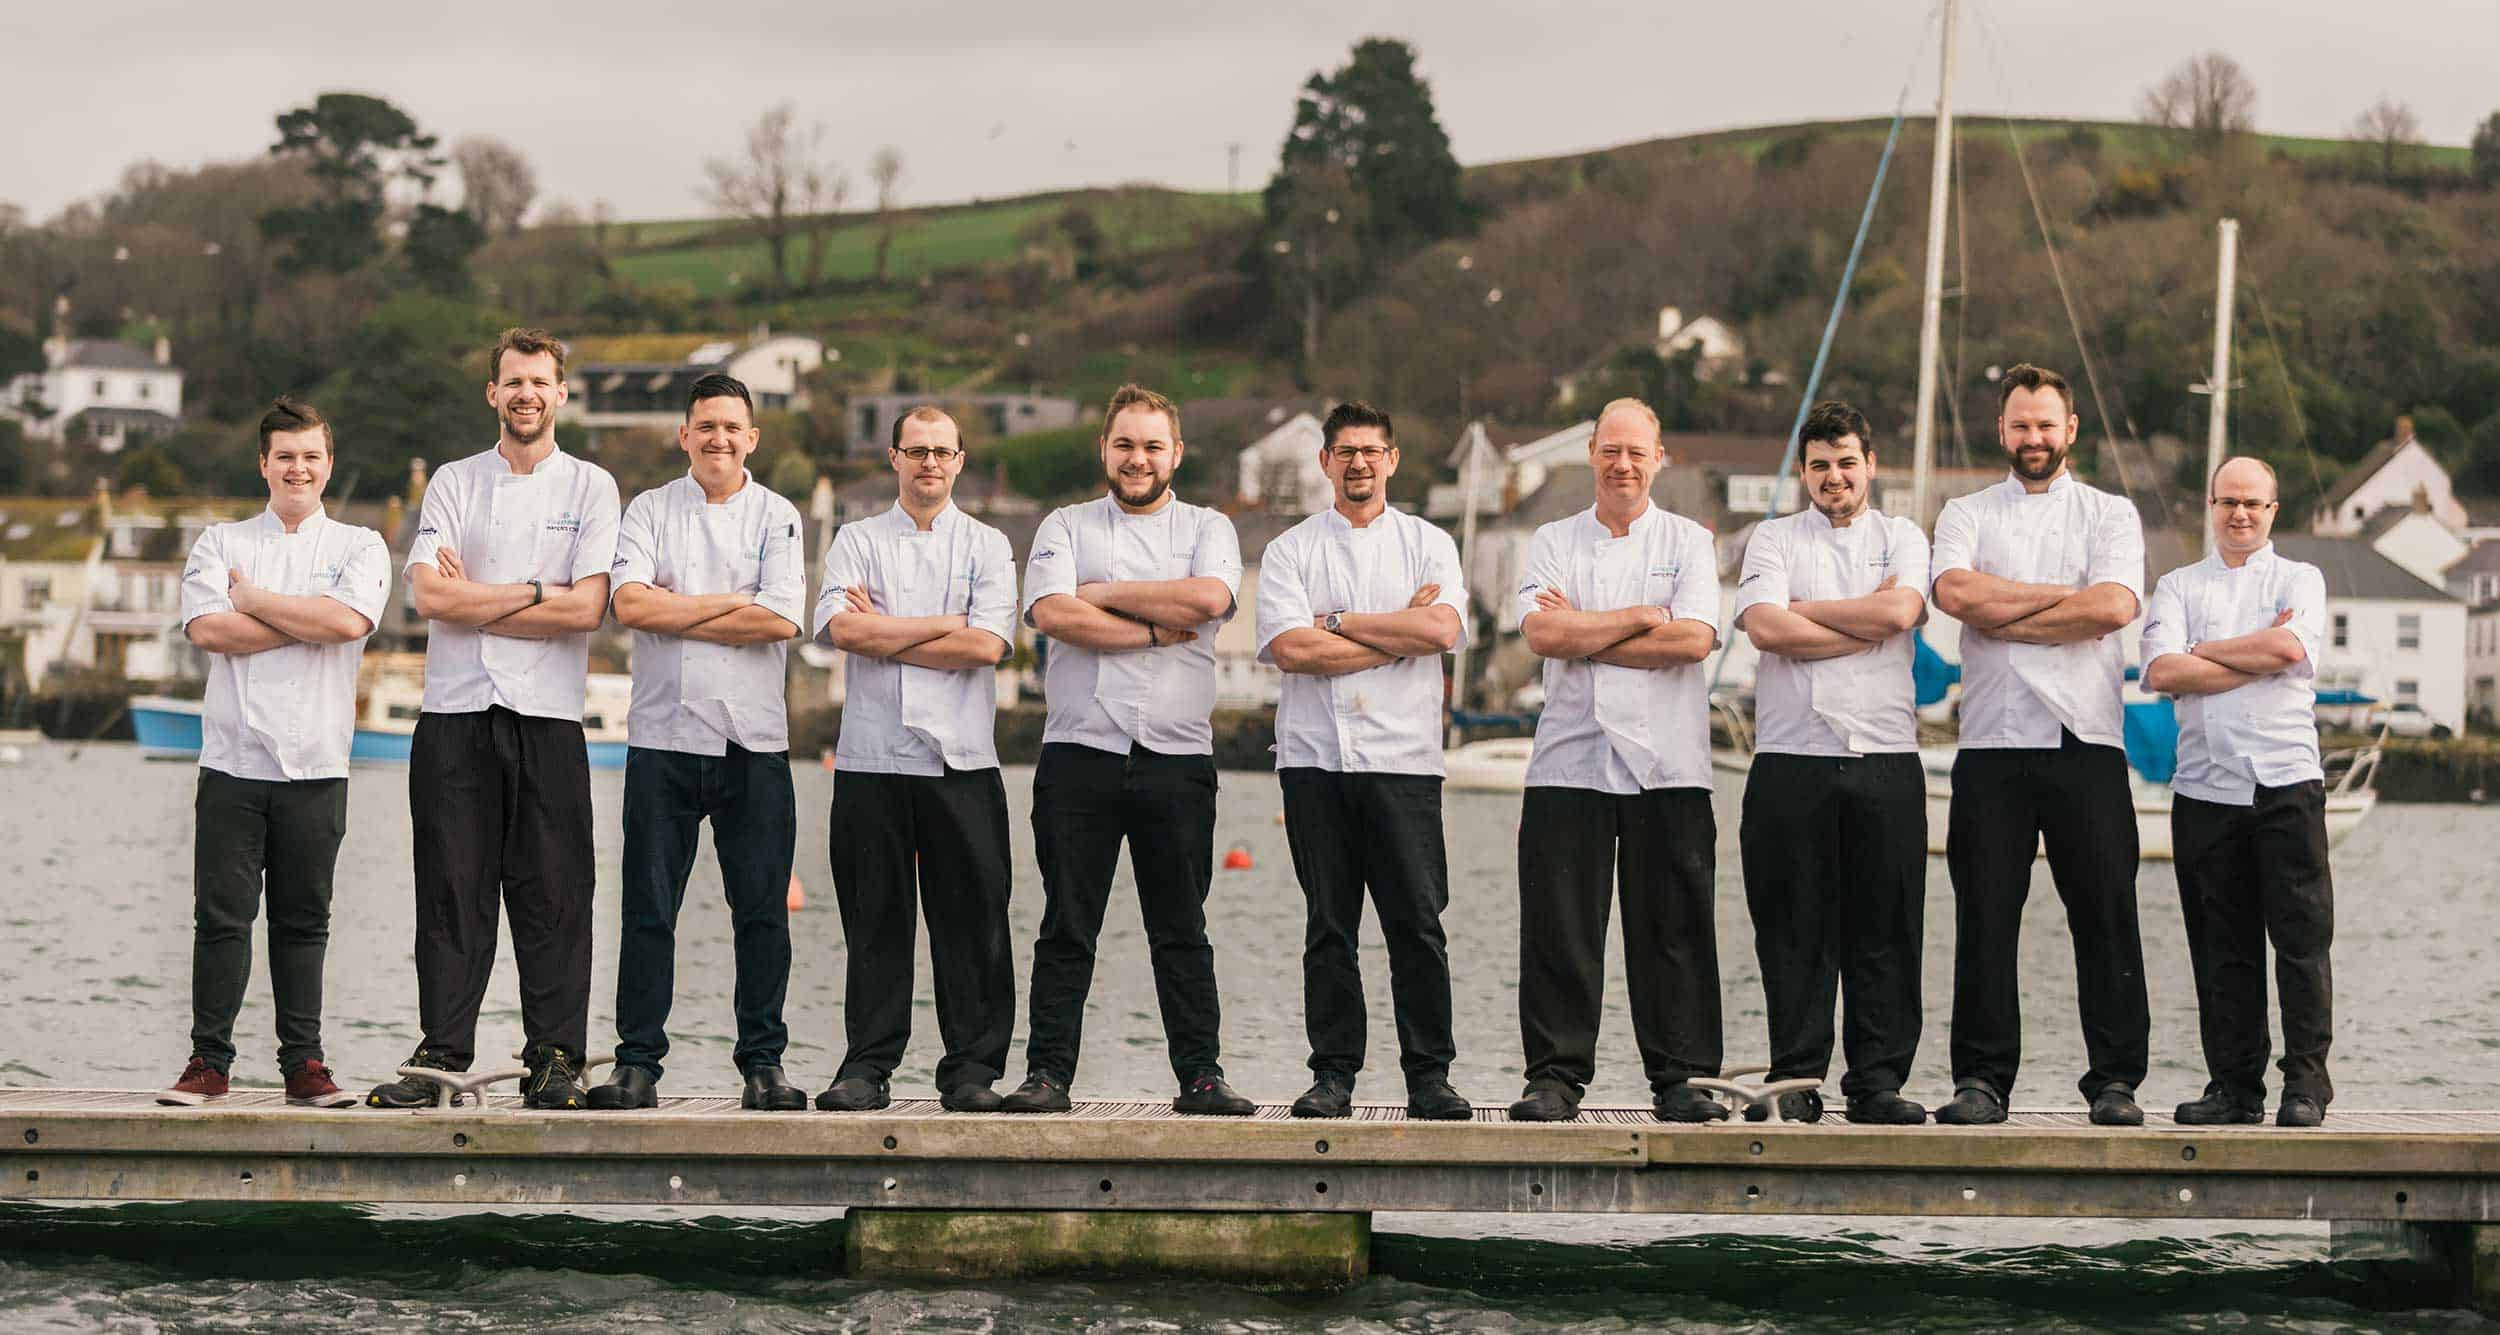 Places-to-Eat-in-Falmouth-greenbank-hotel-falmouth-waters-edge-chef-kitchen-team-cornish-chefs-restaurant